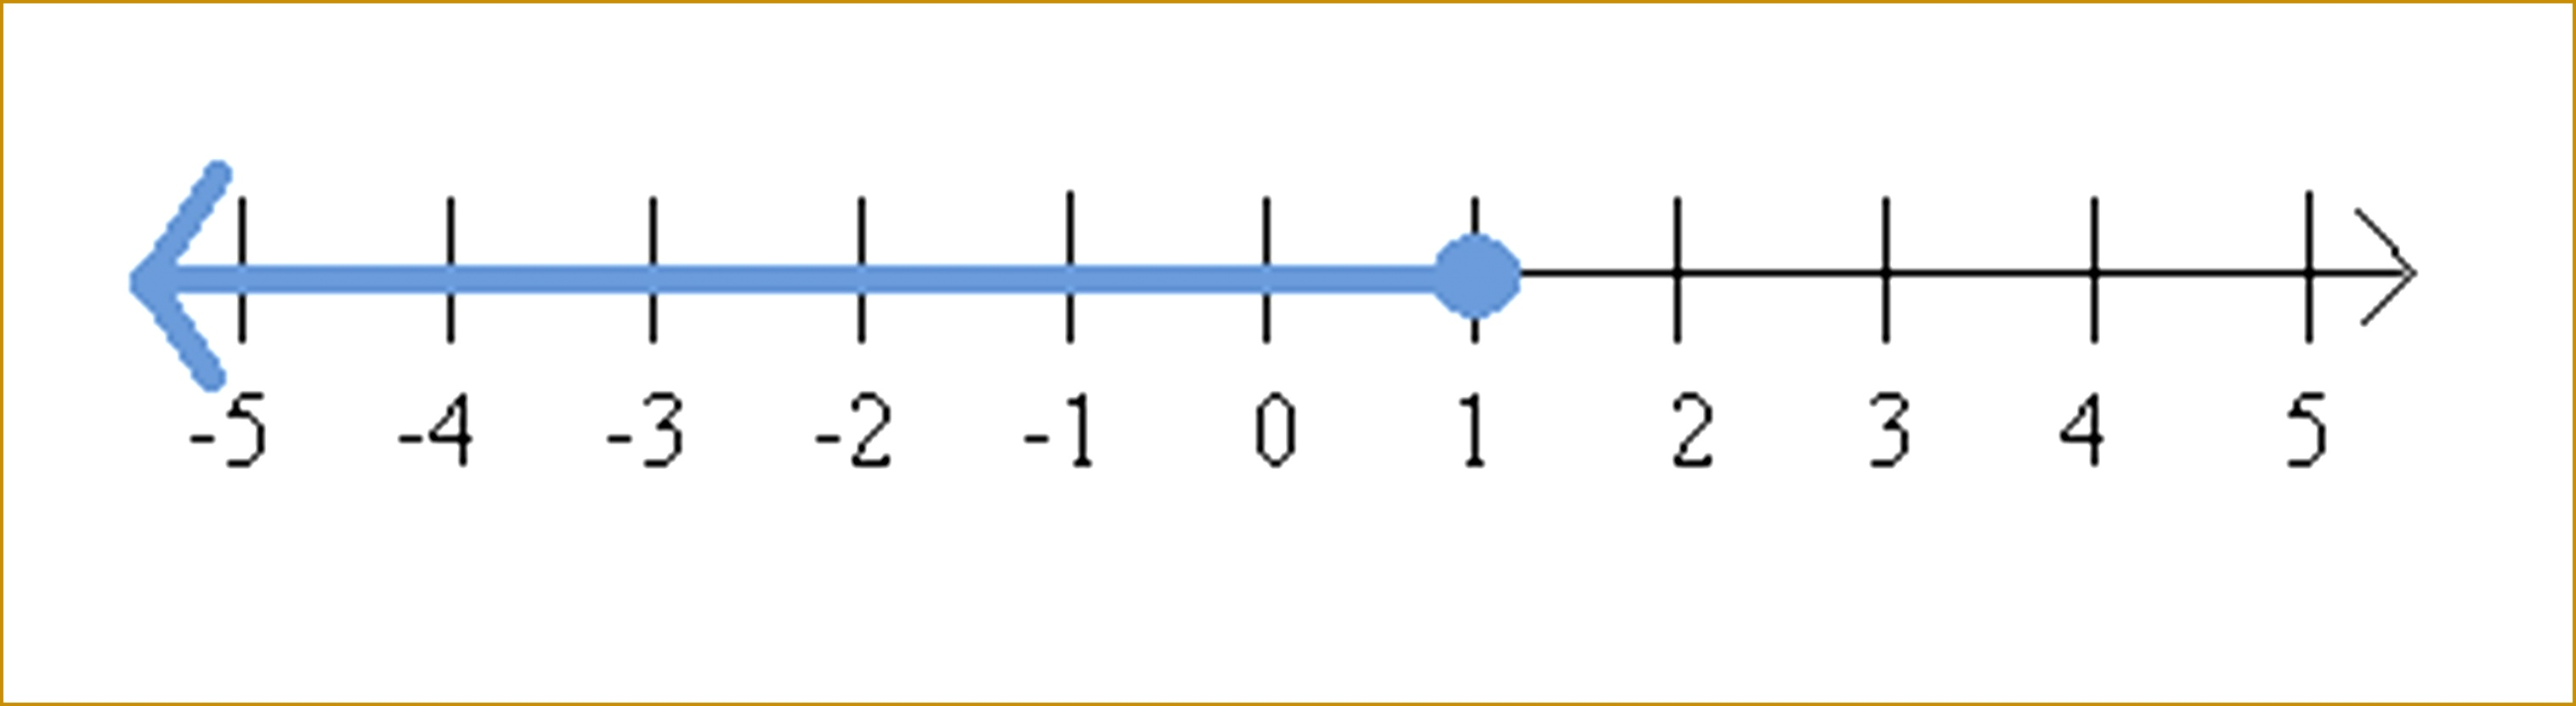 is included in the solution set which makes the solution on the number line look like this 8313031